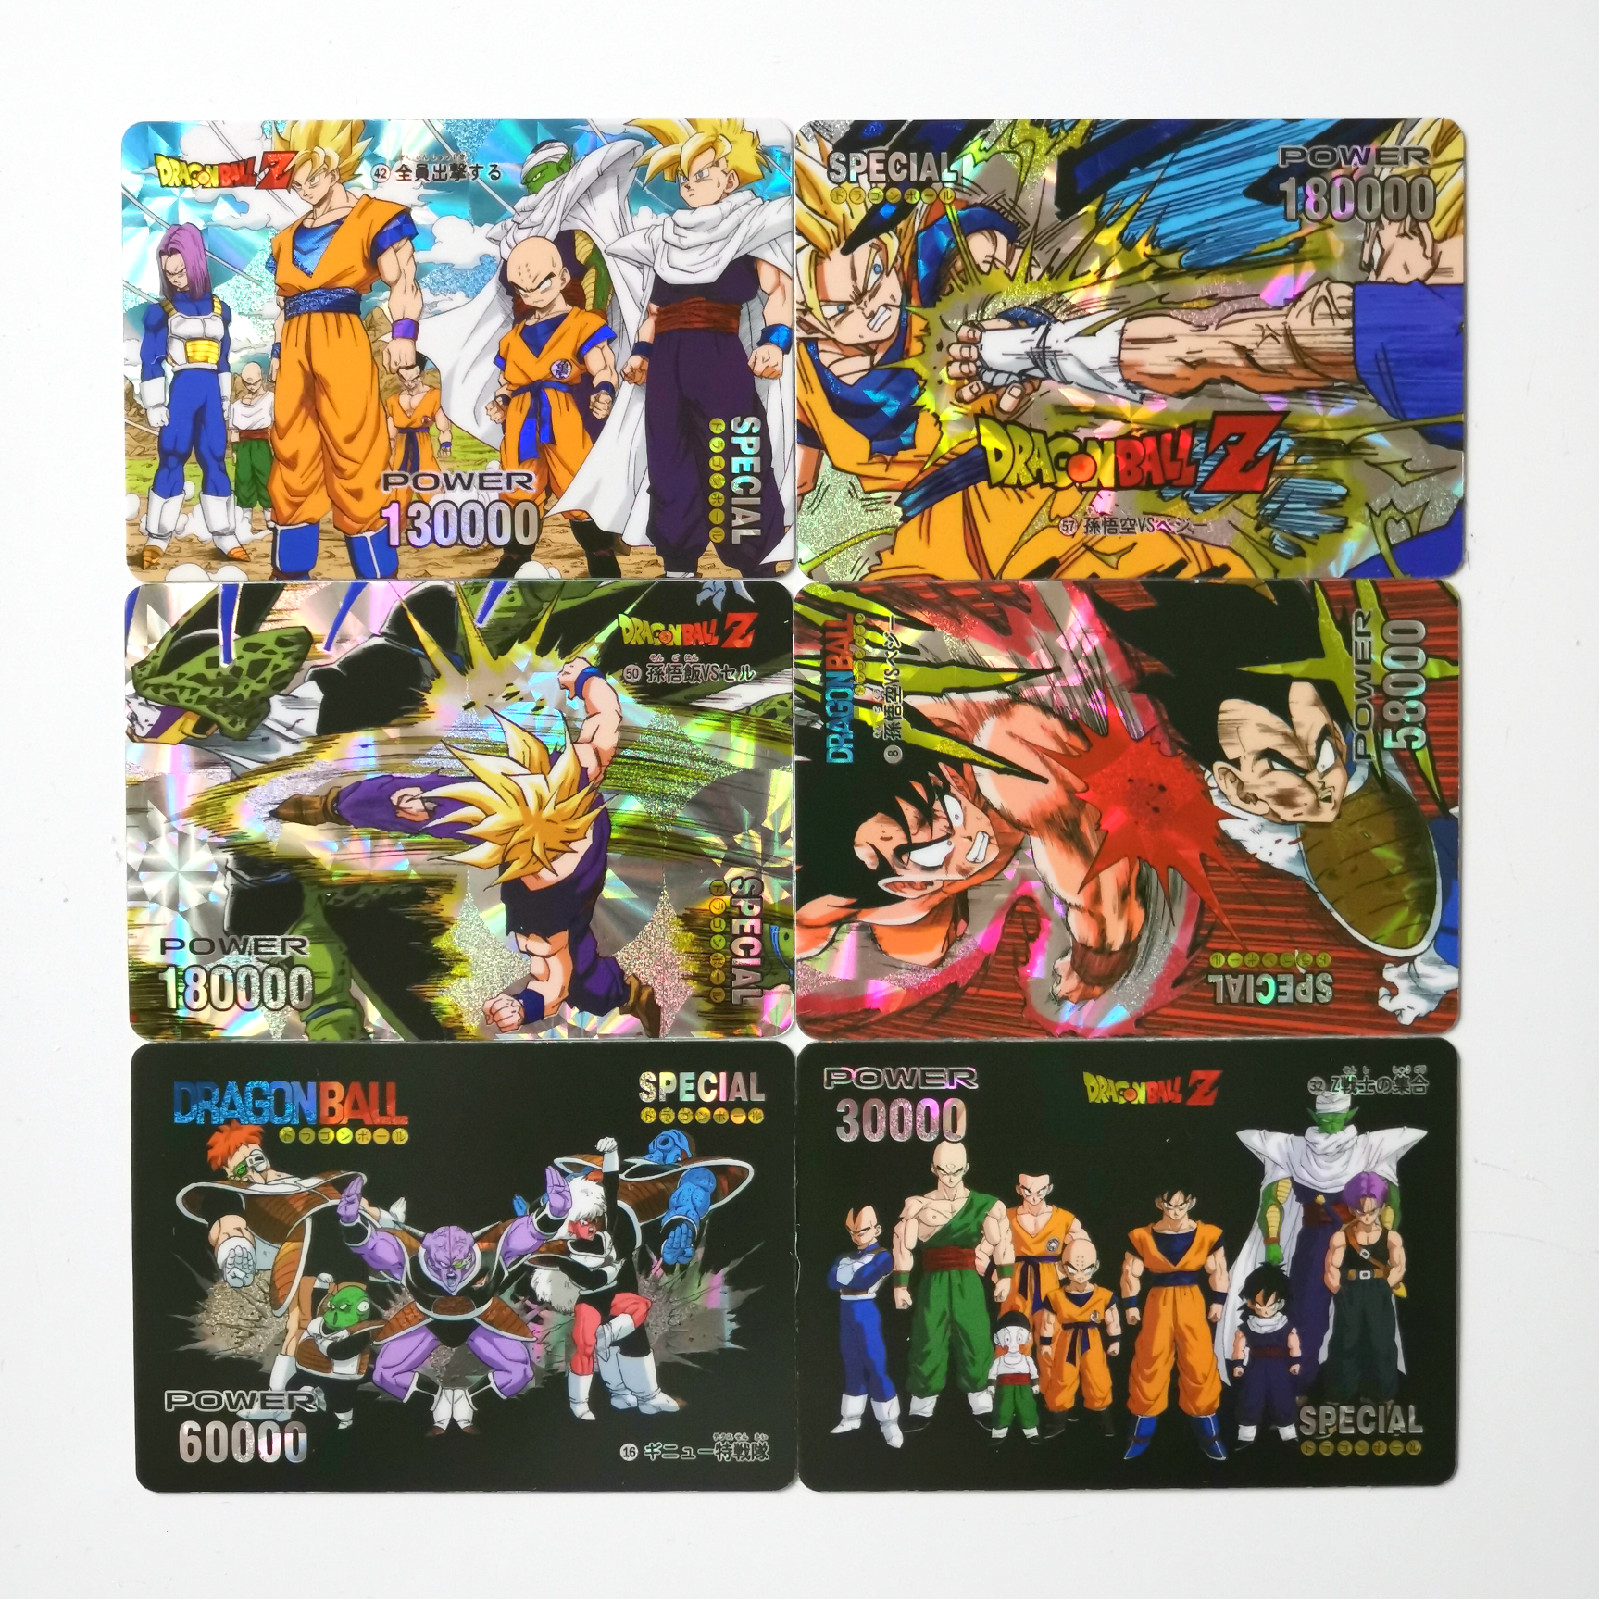 63pcs/set Super Dragon Ball Z Heroes Pasteable Battle Card Ultra Instinct Goku Vegeta Game Collection Cards